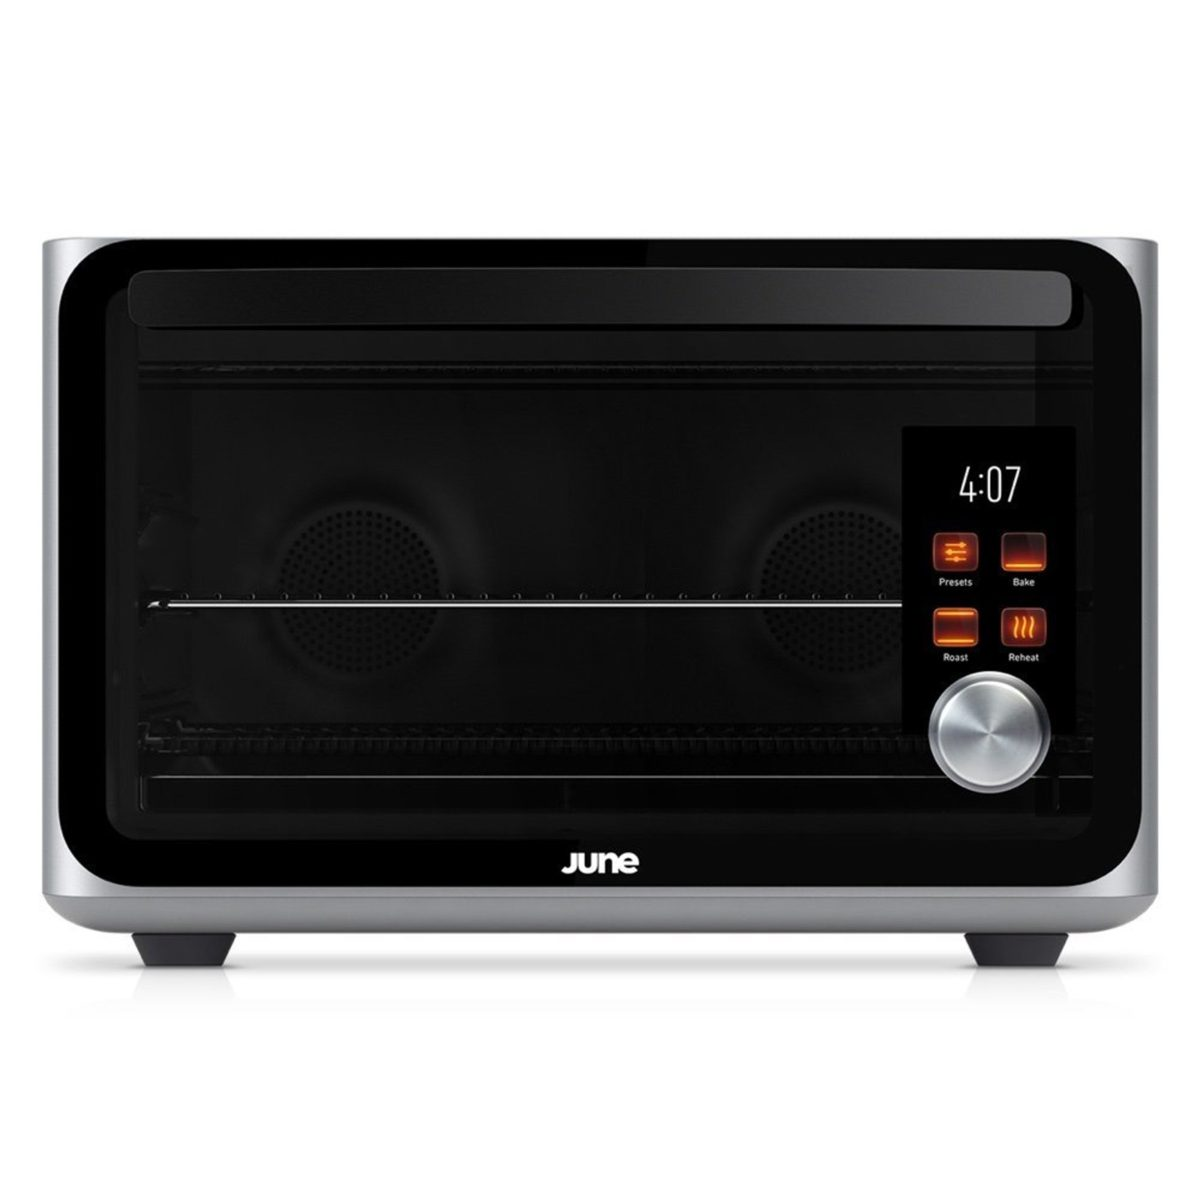 juneoven_07 smart oven